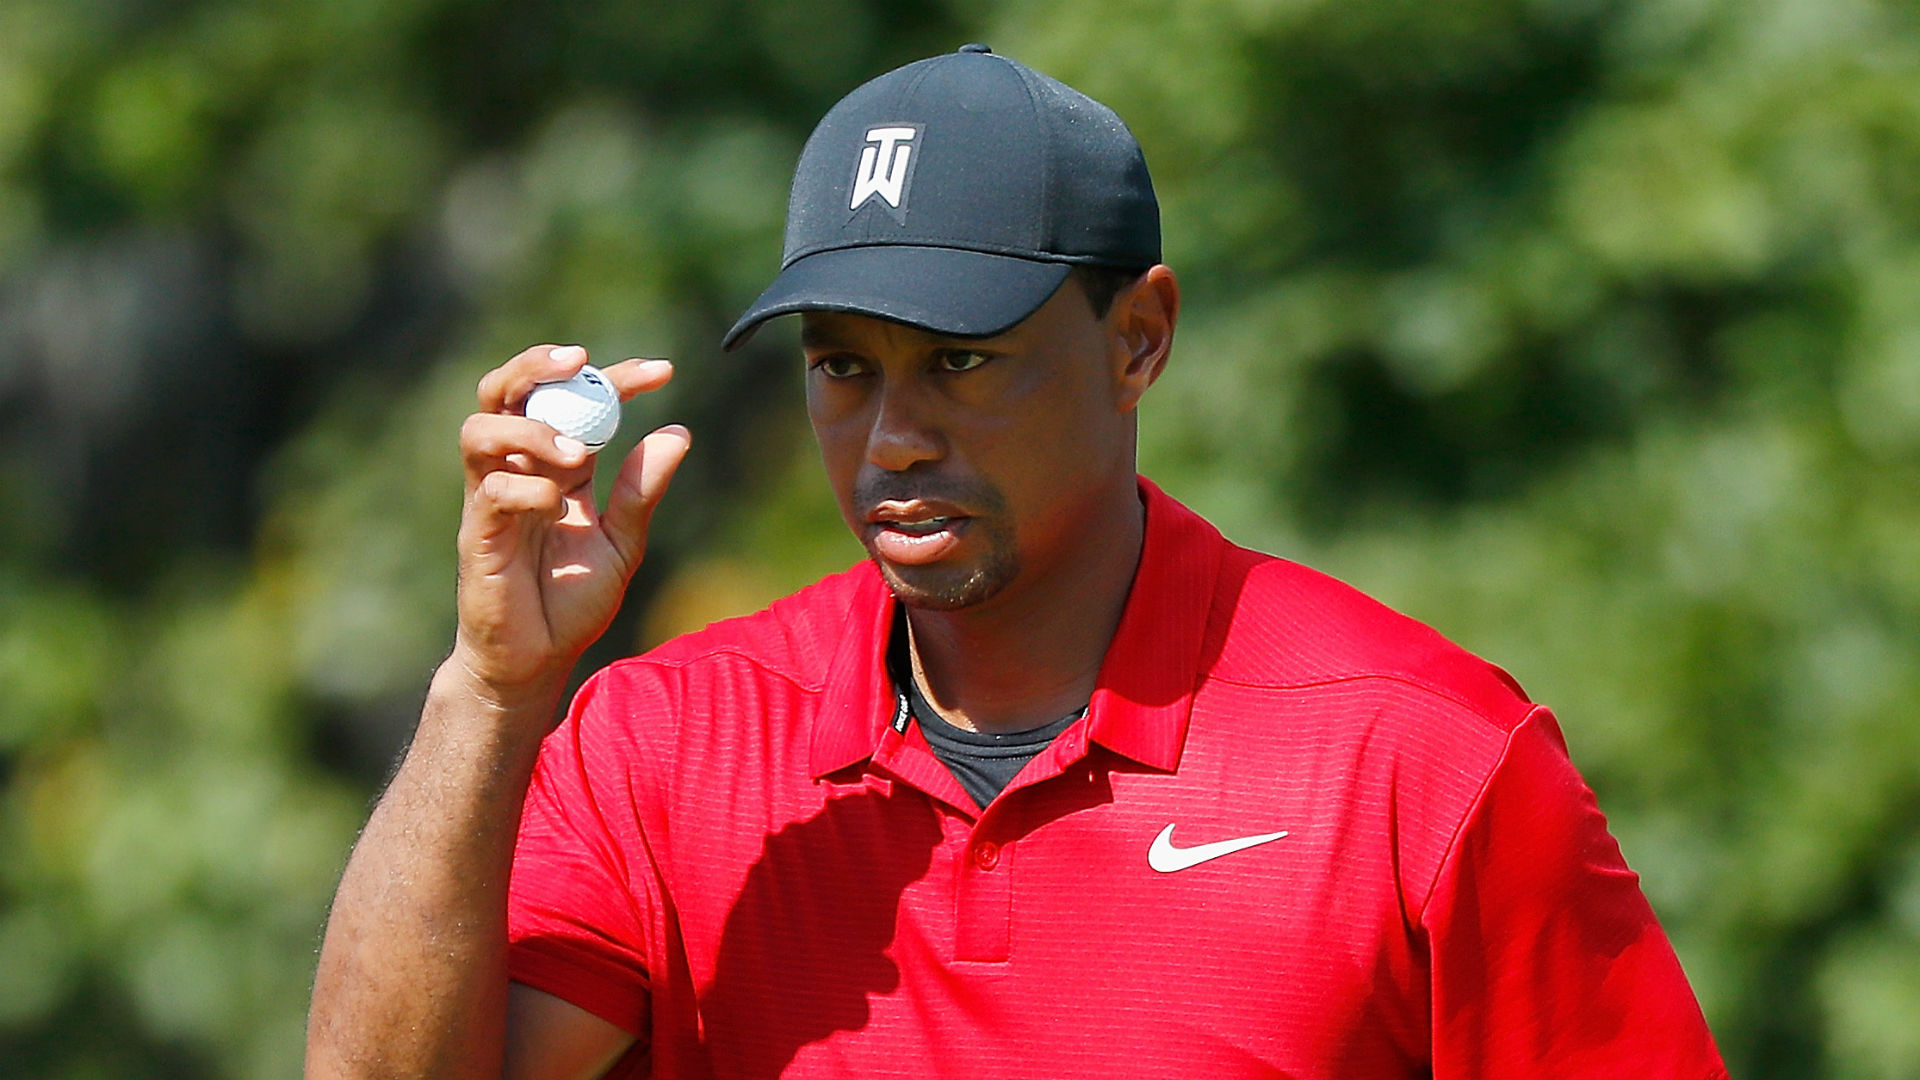 Tiger Woods is this close to winning Tour Championship